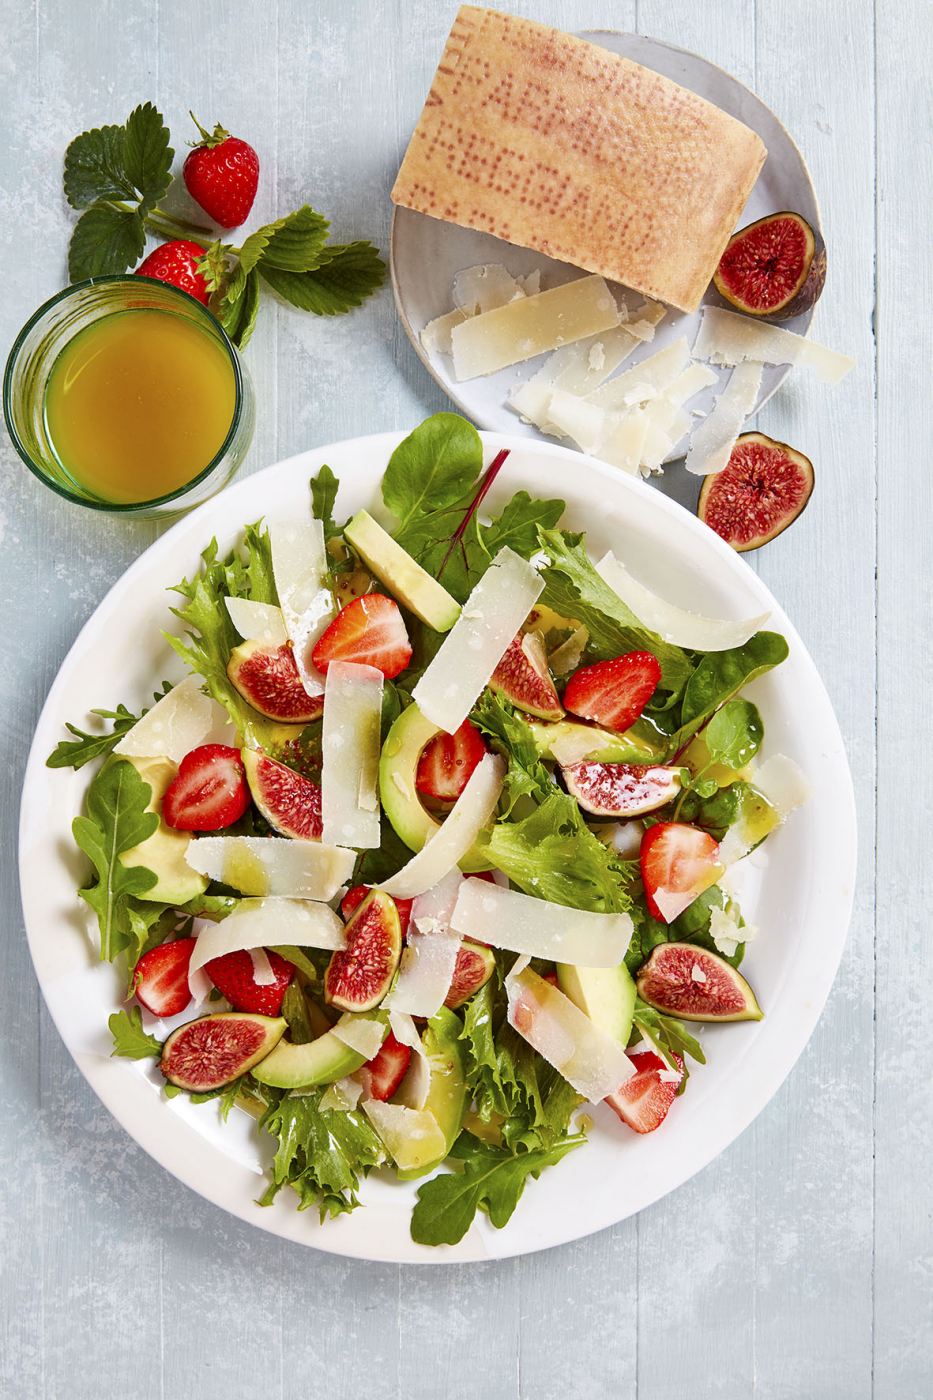 Parmigiano Reggiano Salad with Avocado, Strawberries and Figs